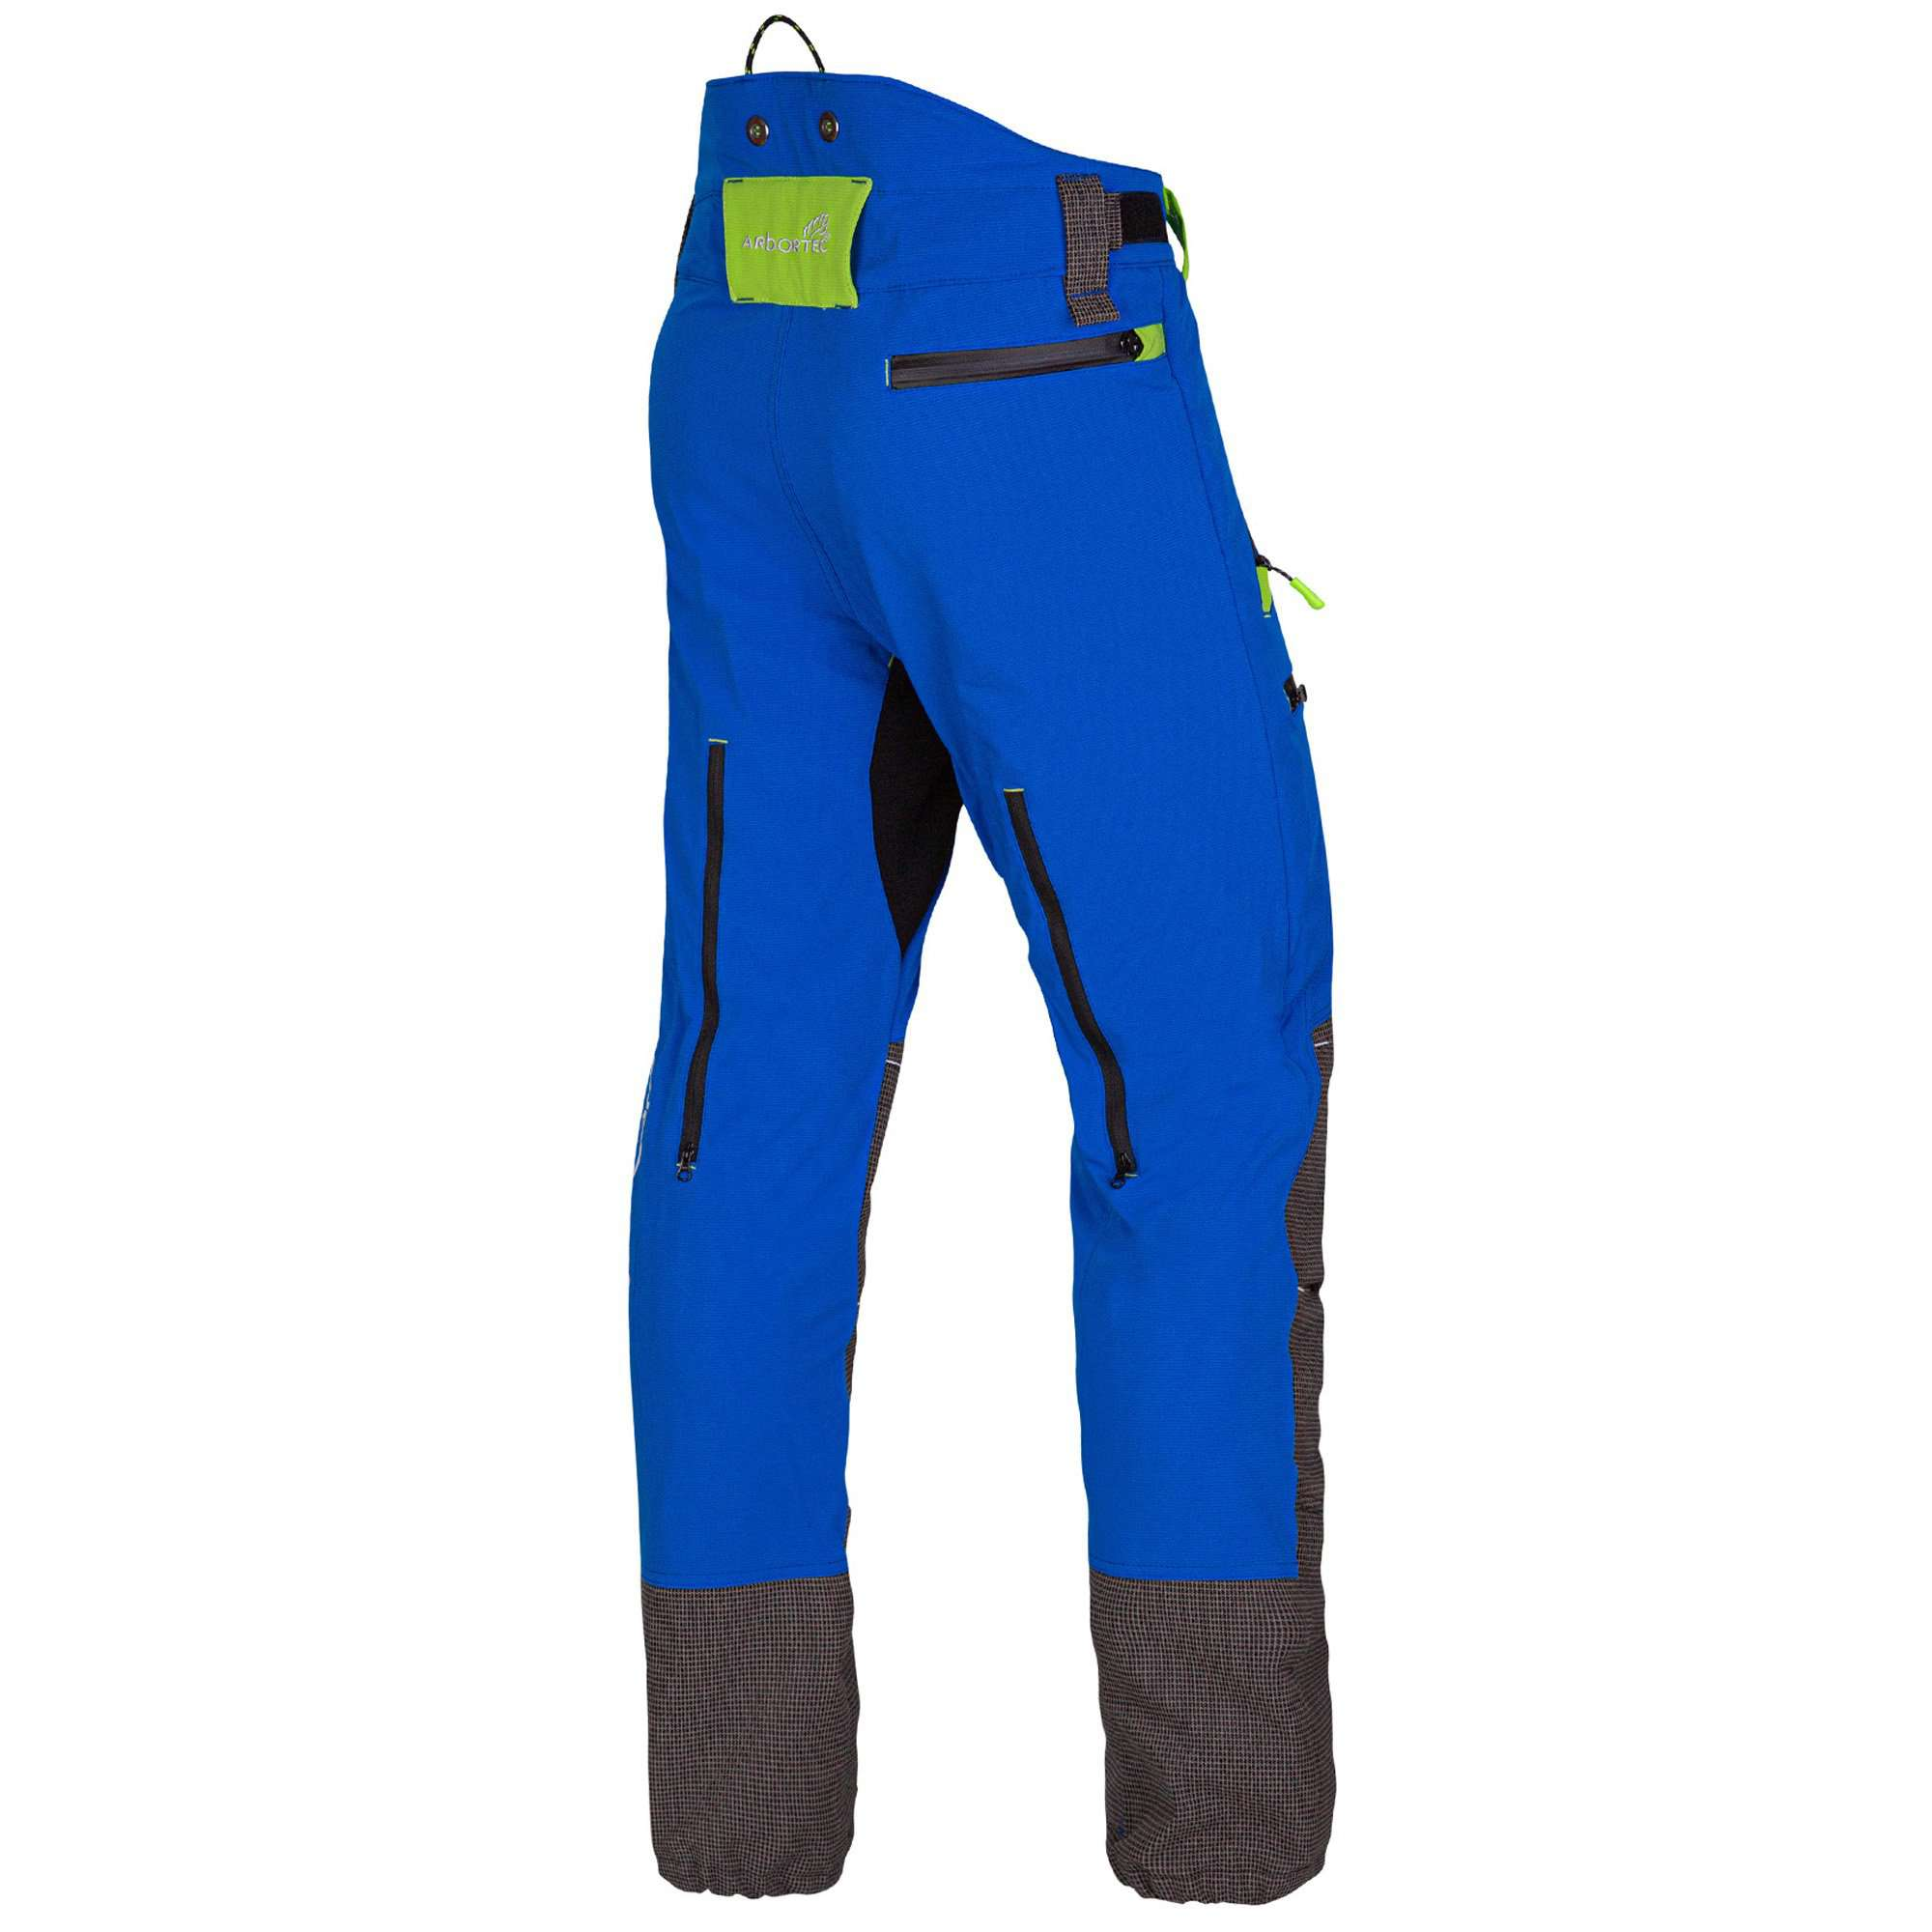 AT4060 Breatheflex Pro Type A Class 1 Chainsaw Trousers - Blue